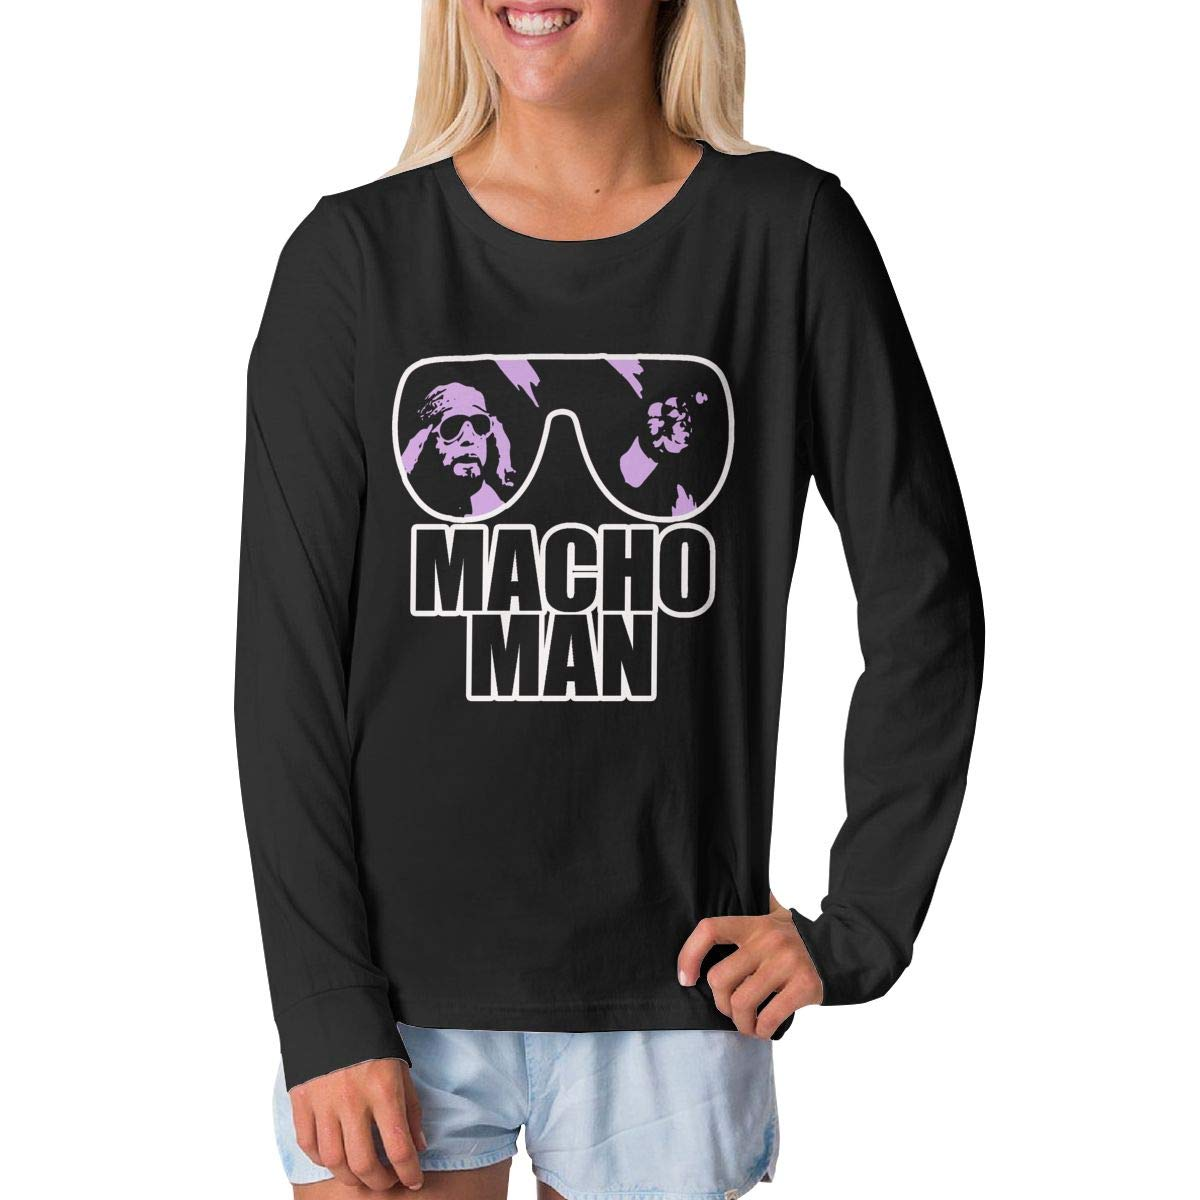 BilliePhillips Youngster Macho Man Fashion Long Sleeve Tshirts